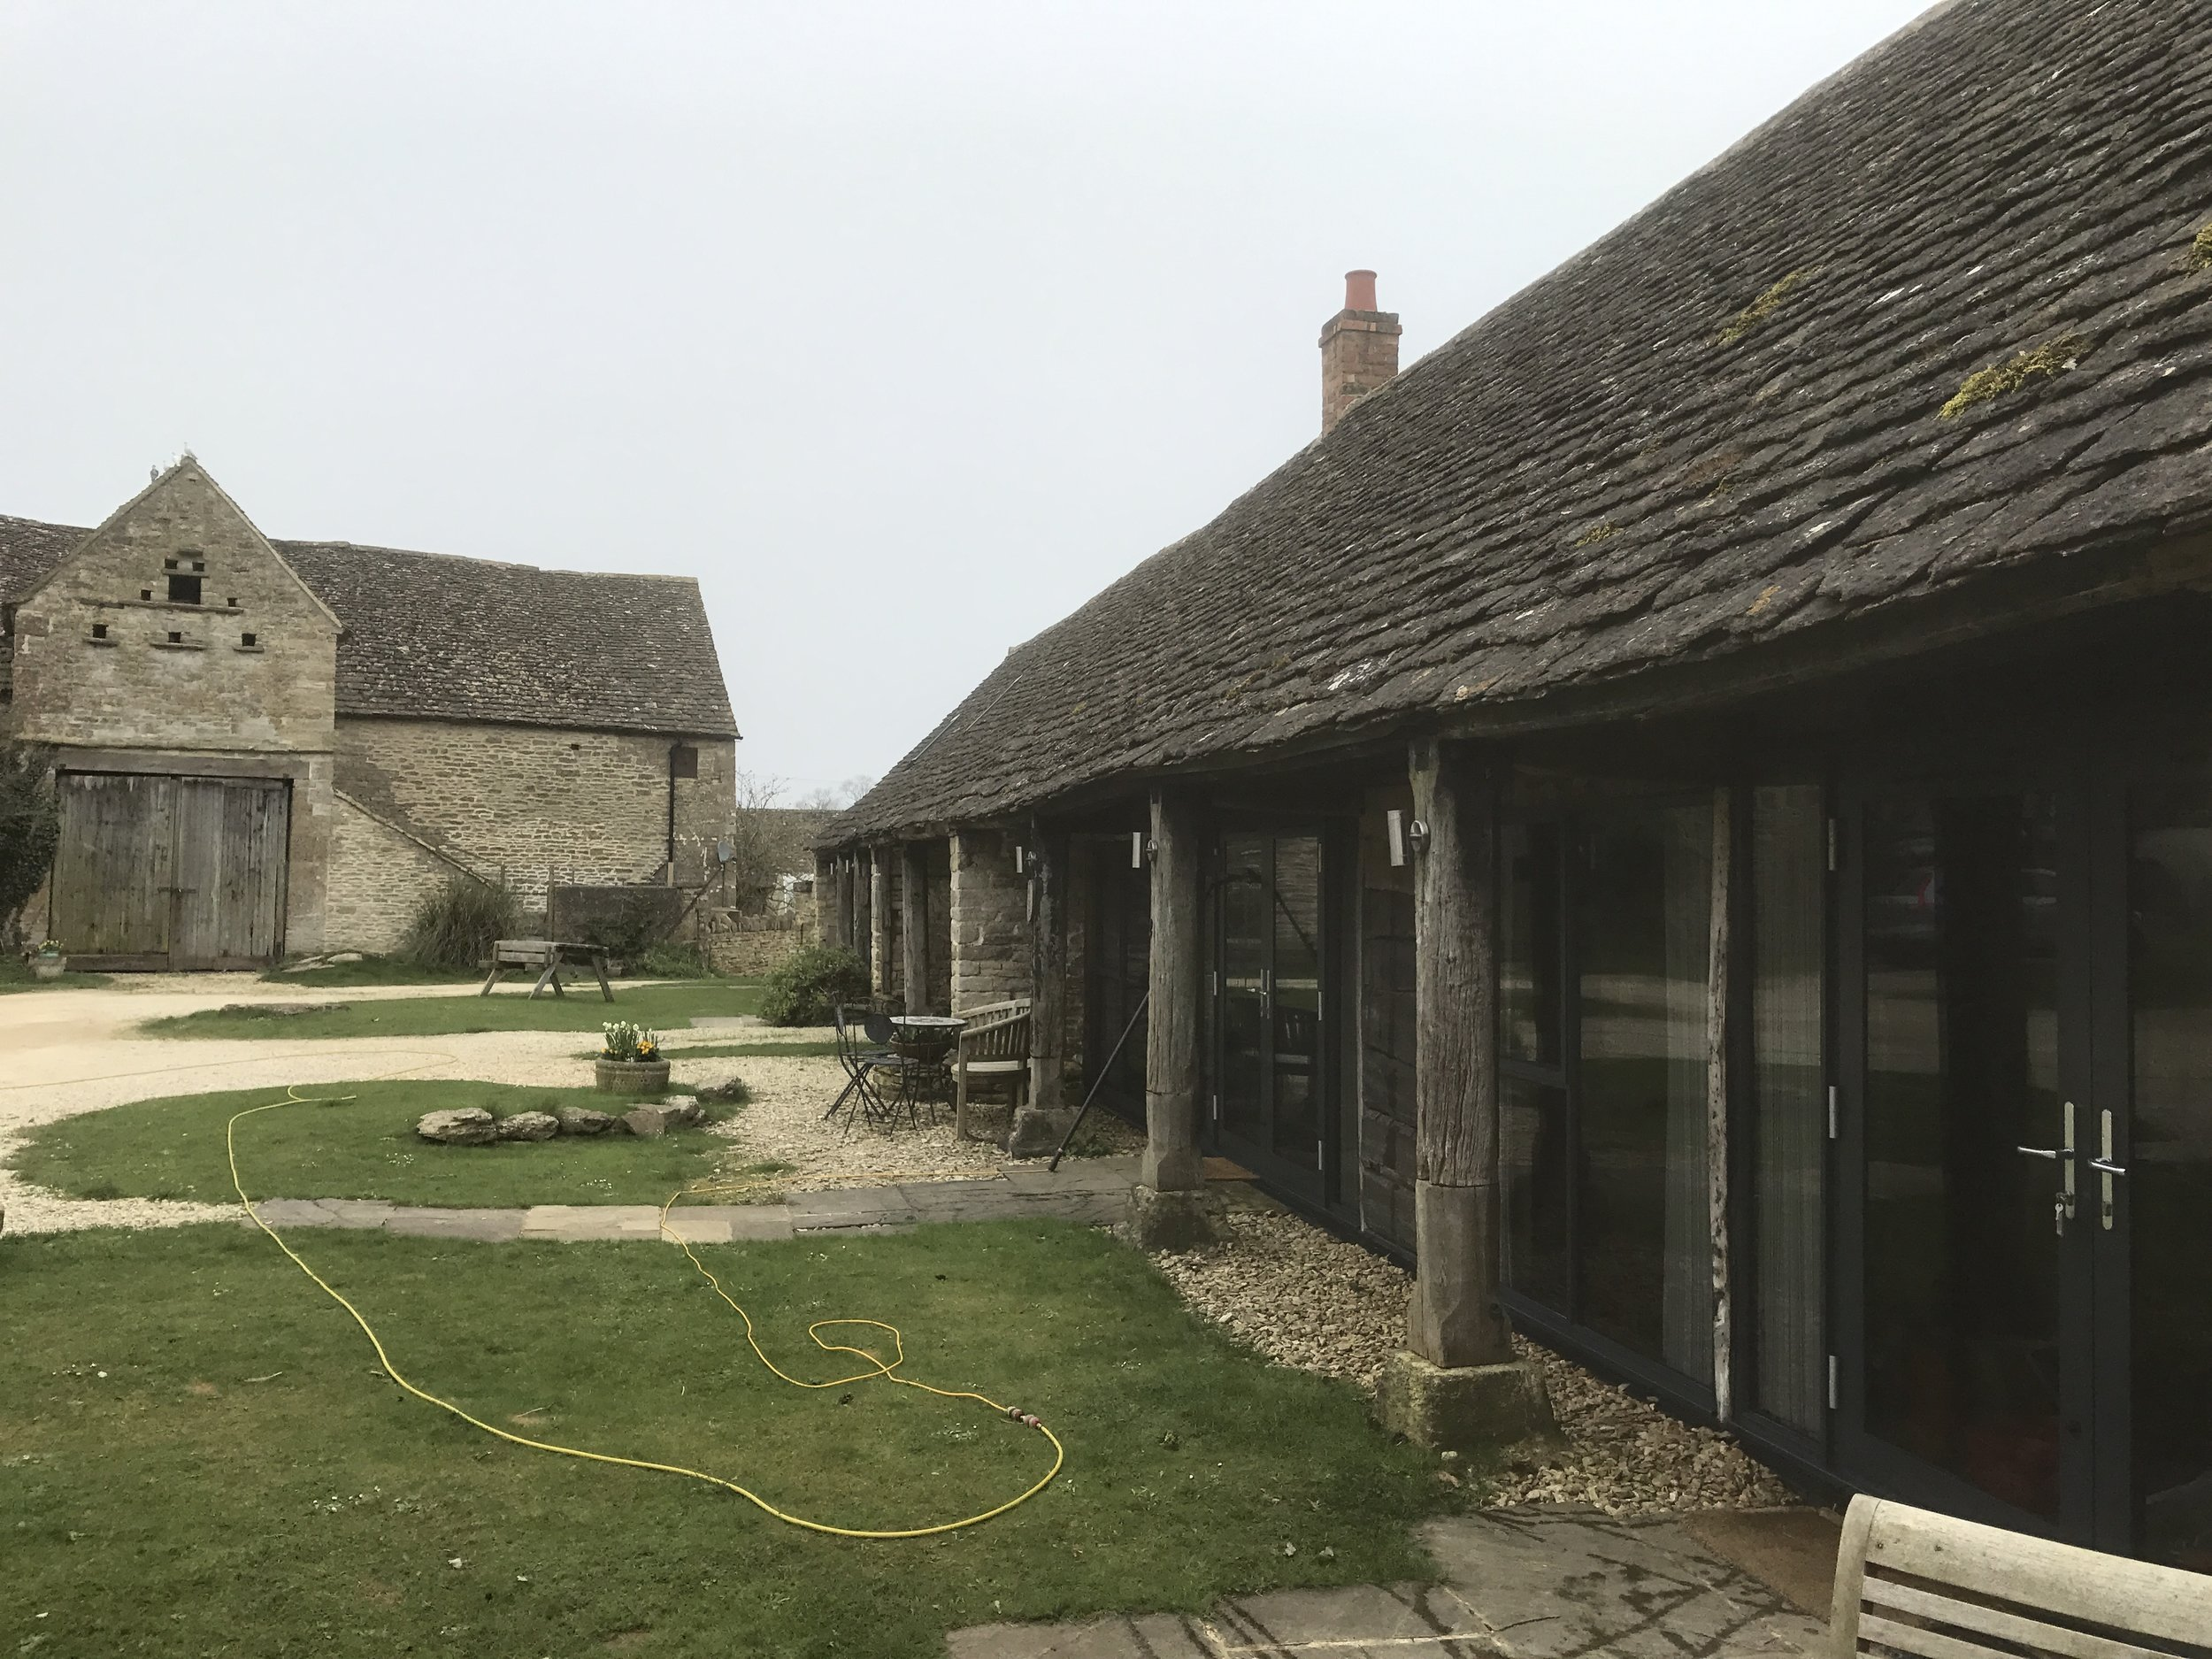 Cotswold stone barns converted into holiday accommodation